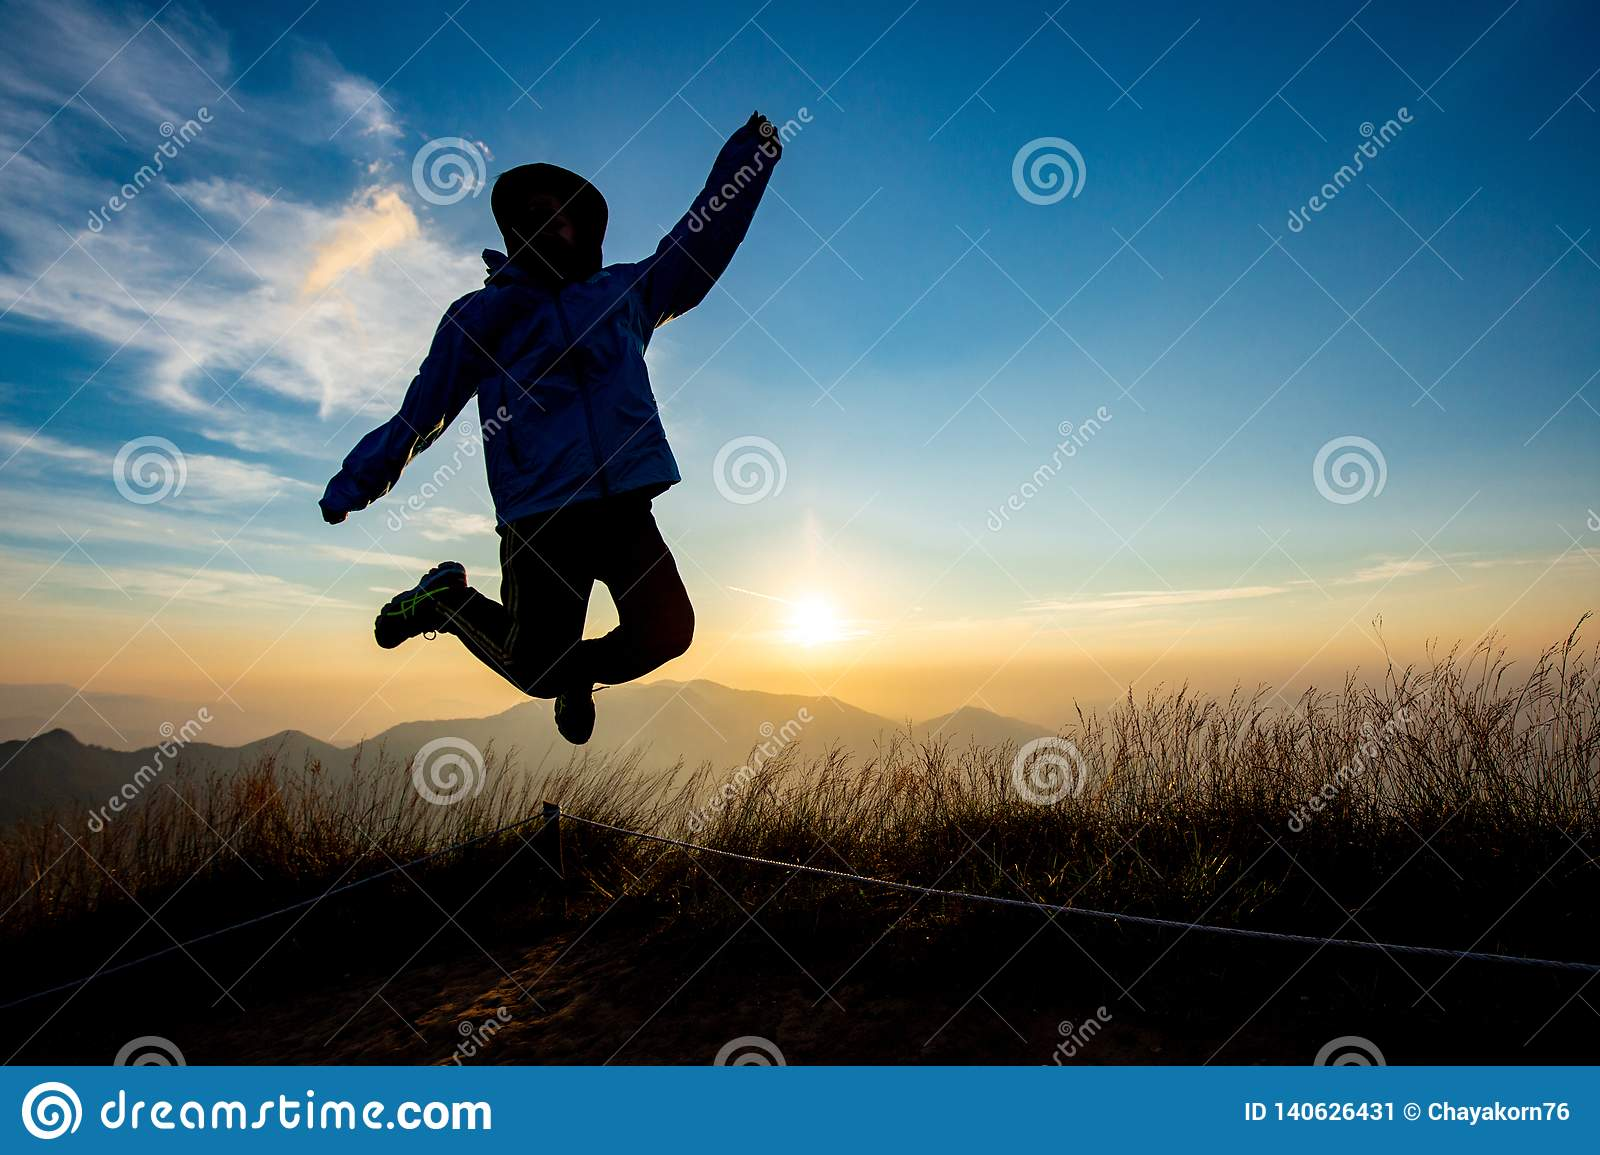 Lady in Jump action with sunset background